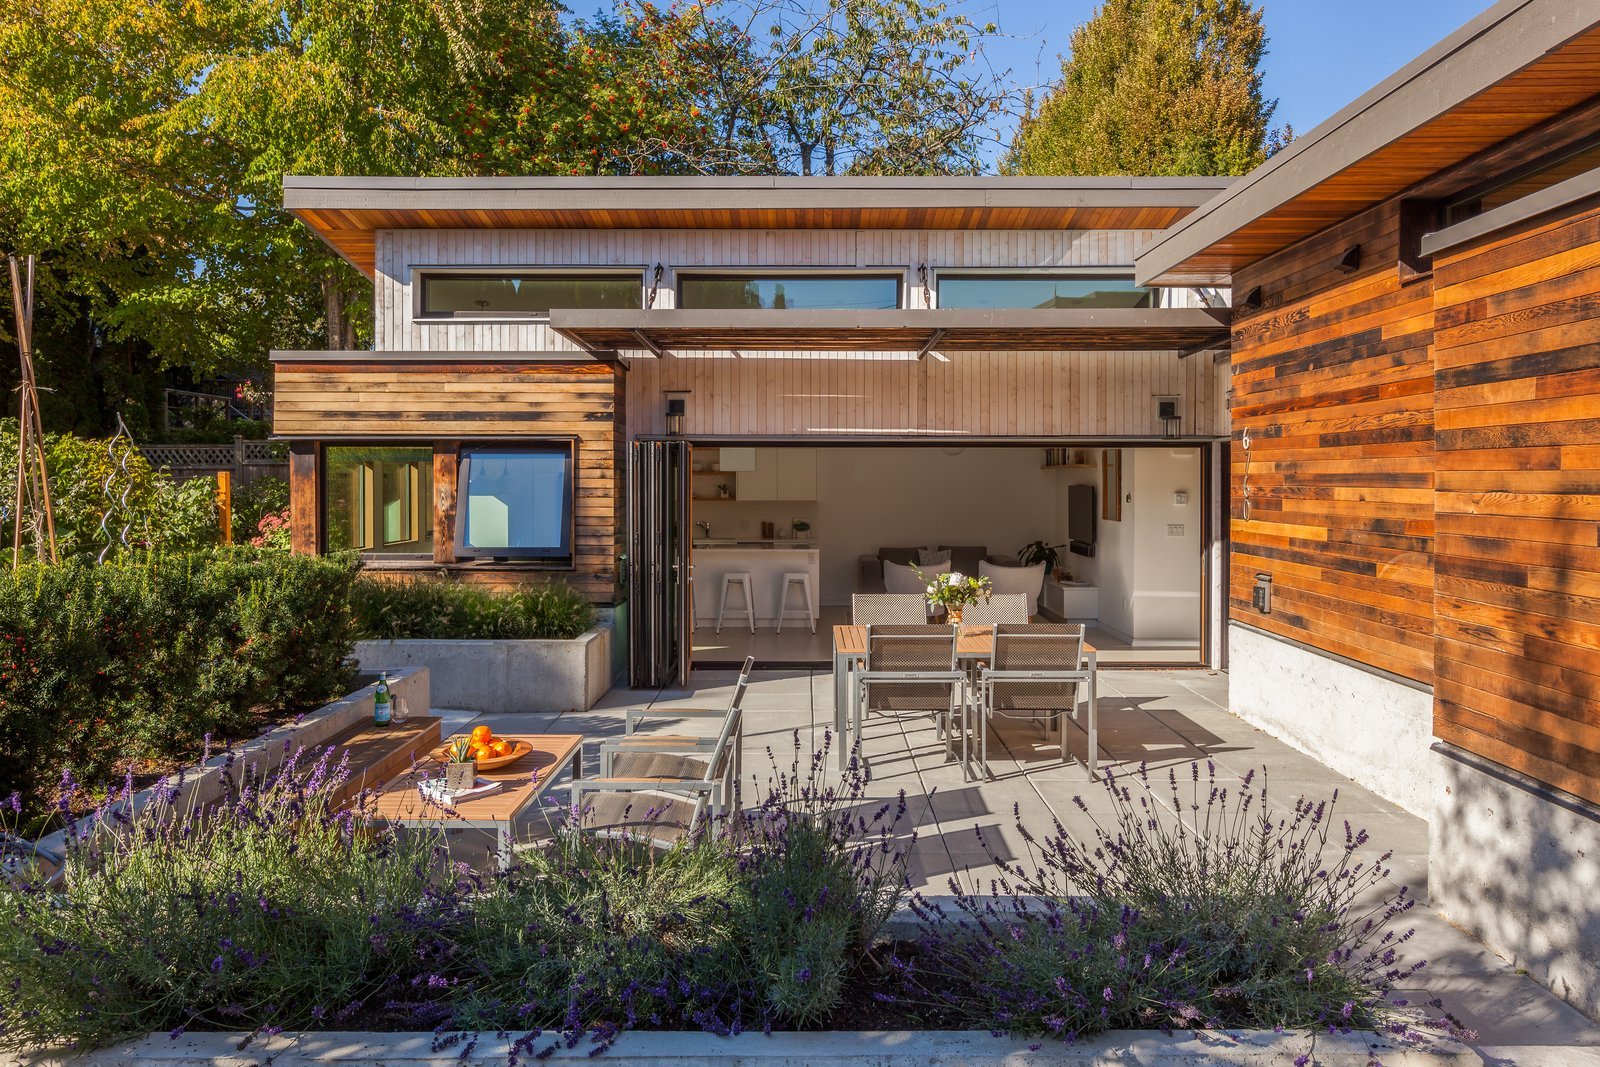 Photo 1 of 12 in 11 of Our Favorite Pacific Northwest Homes From the ...